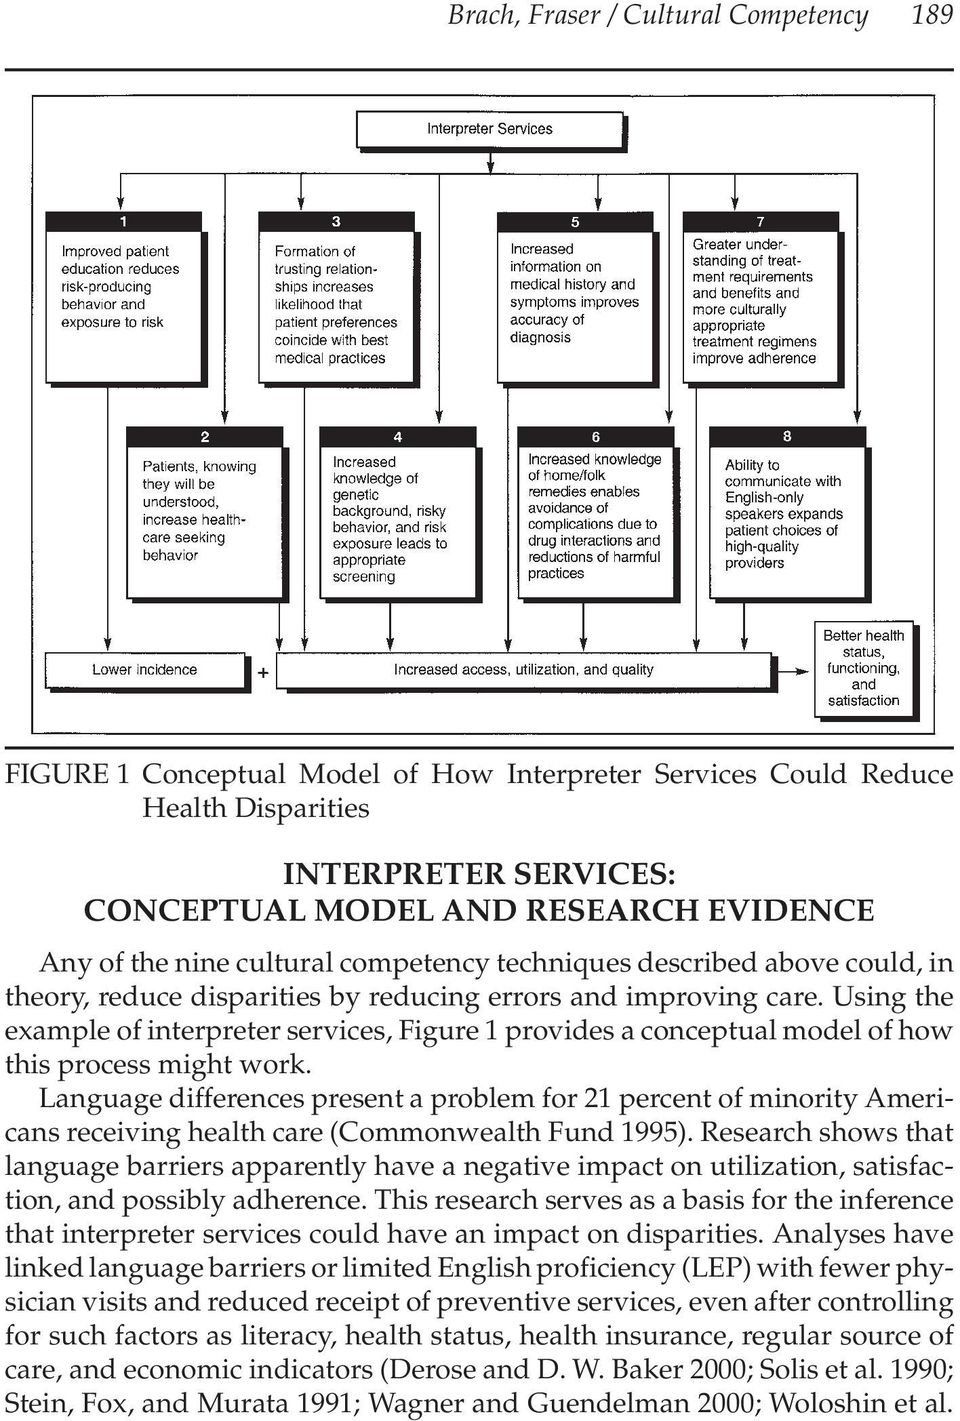 Using the example of interpreter services, Figure 1 provides a conceptual model of how this process might work.